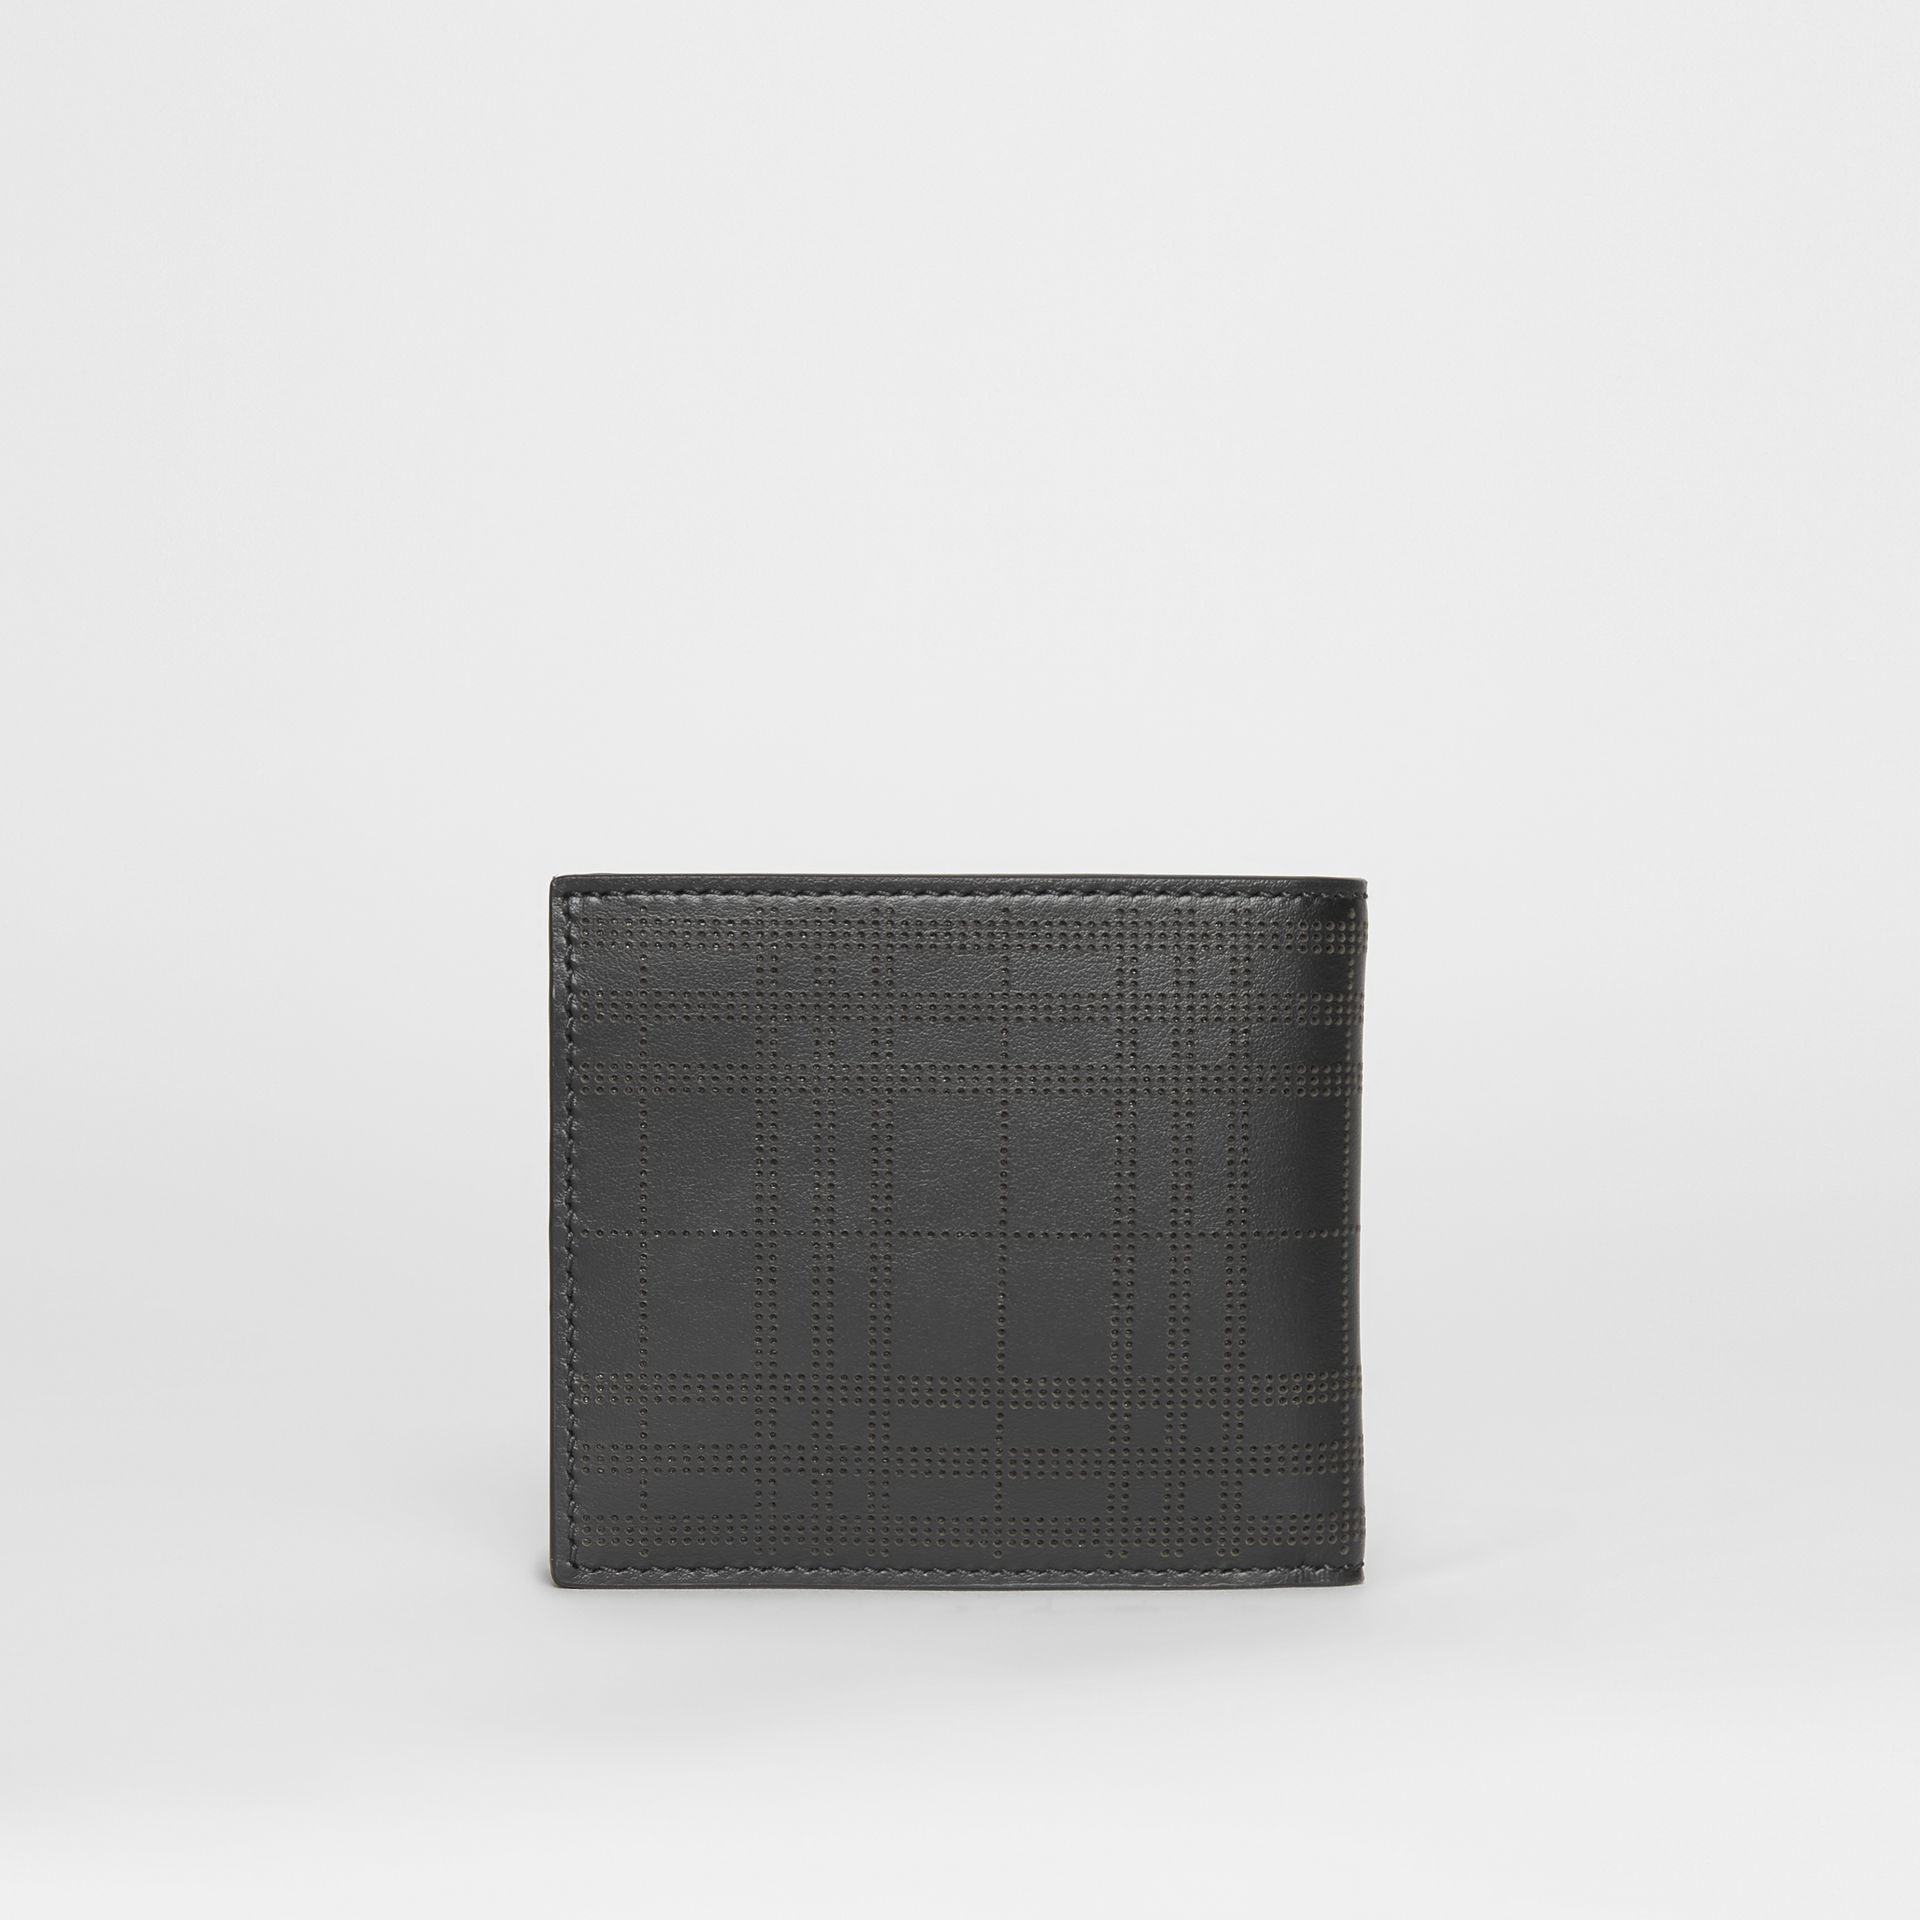 Perforated Check Leather International Bifold Wallet in Black - Men | Burberry Canada - gallery image 4